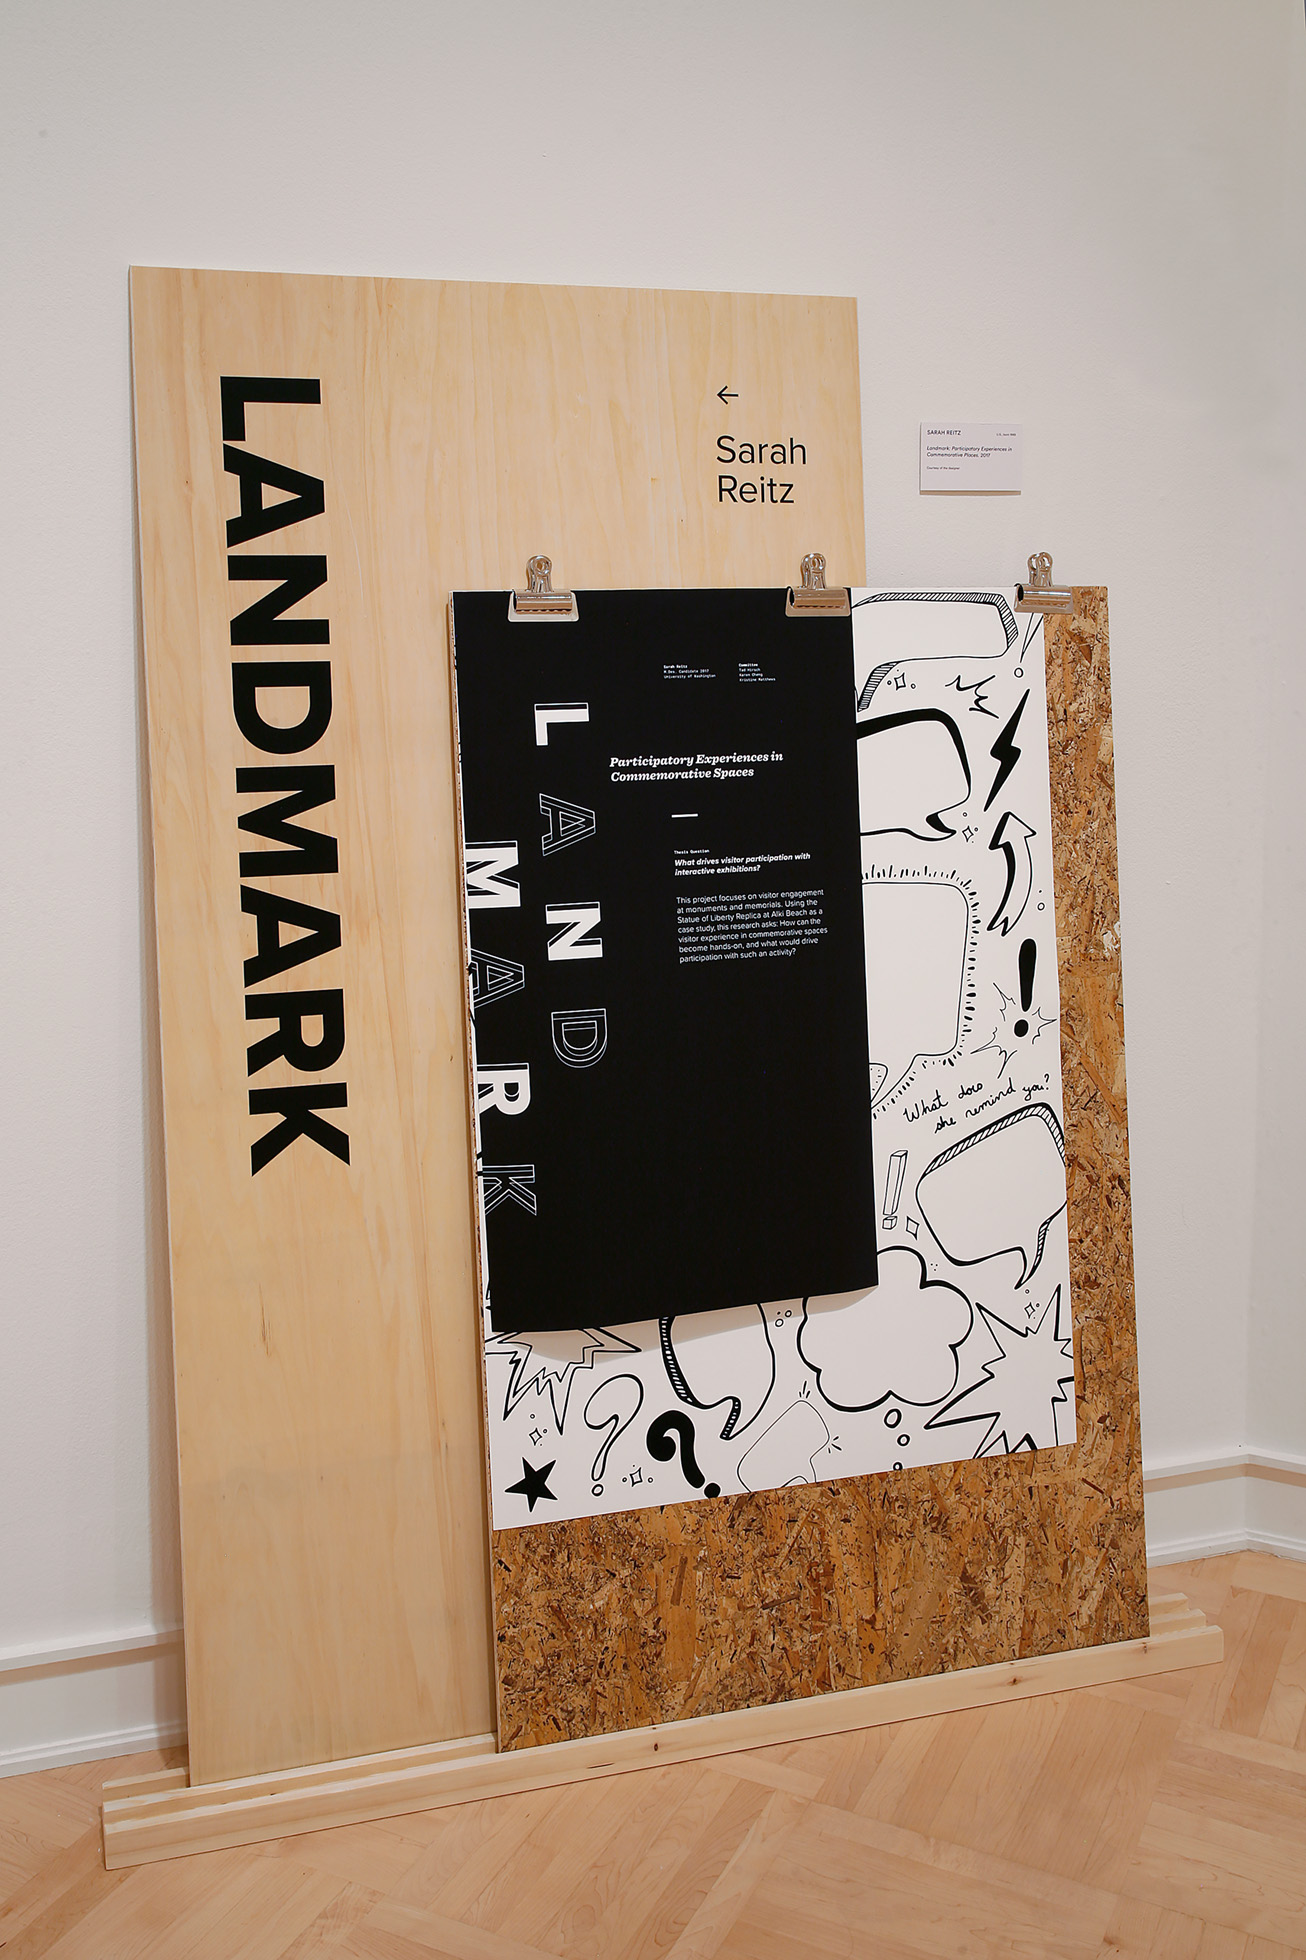 Landmark: Participatory Experiences in Commemorative Places (portion) by Sarah Reitz